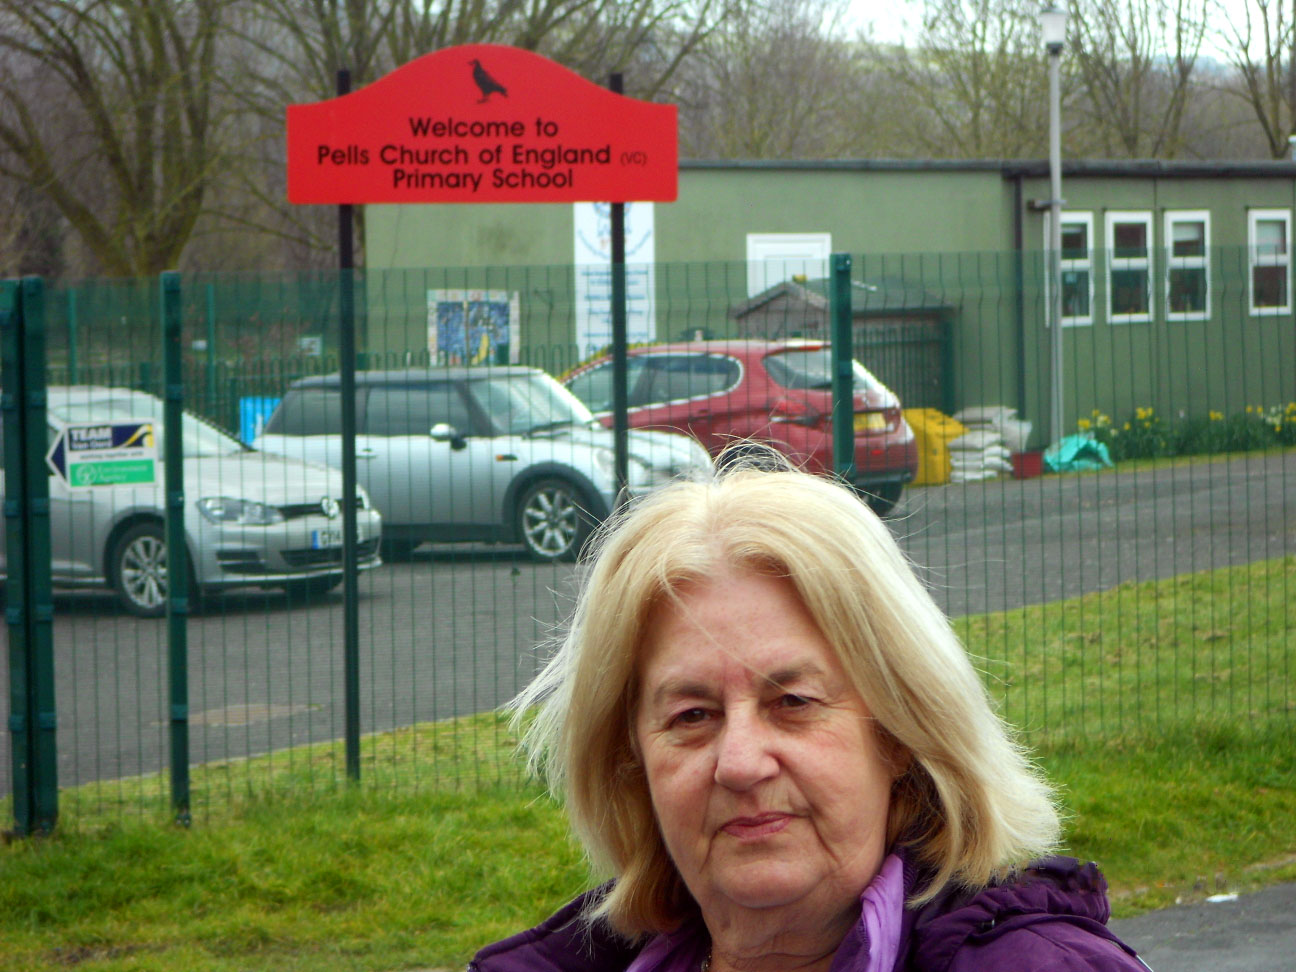 Shirley_Sains_at_Pells_School.jpg